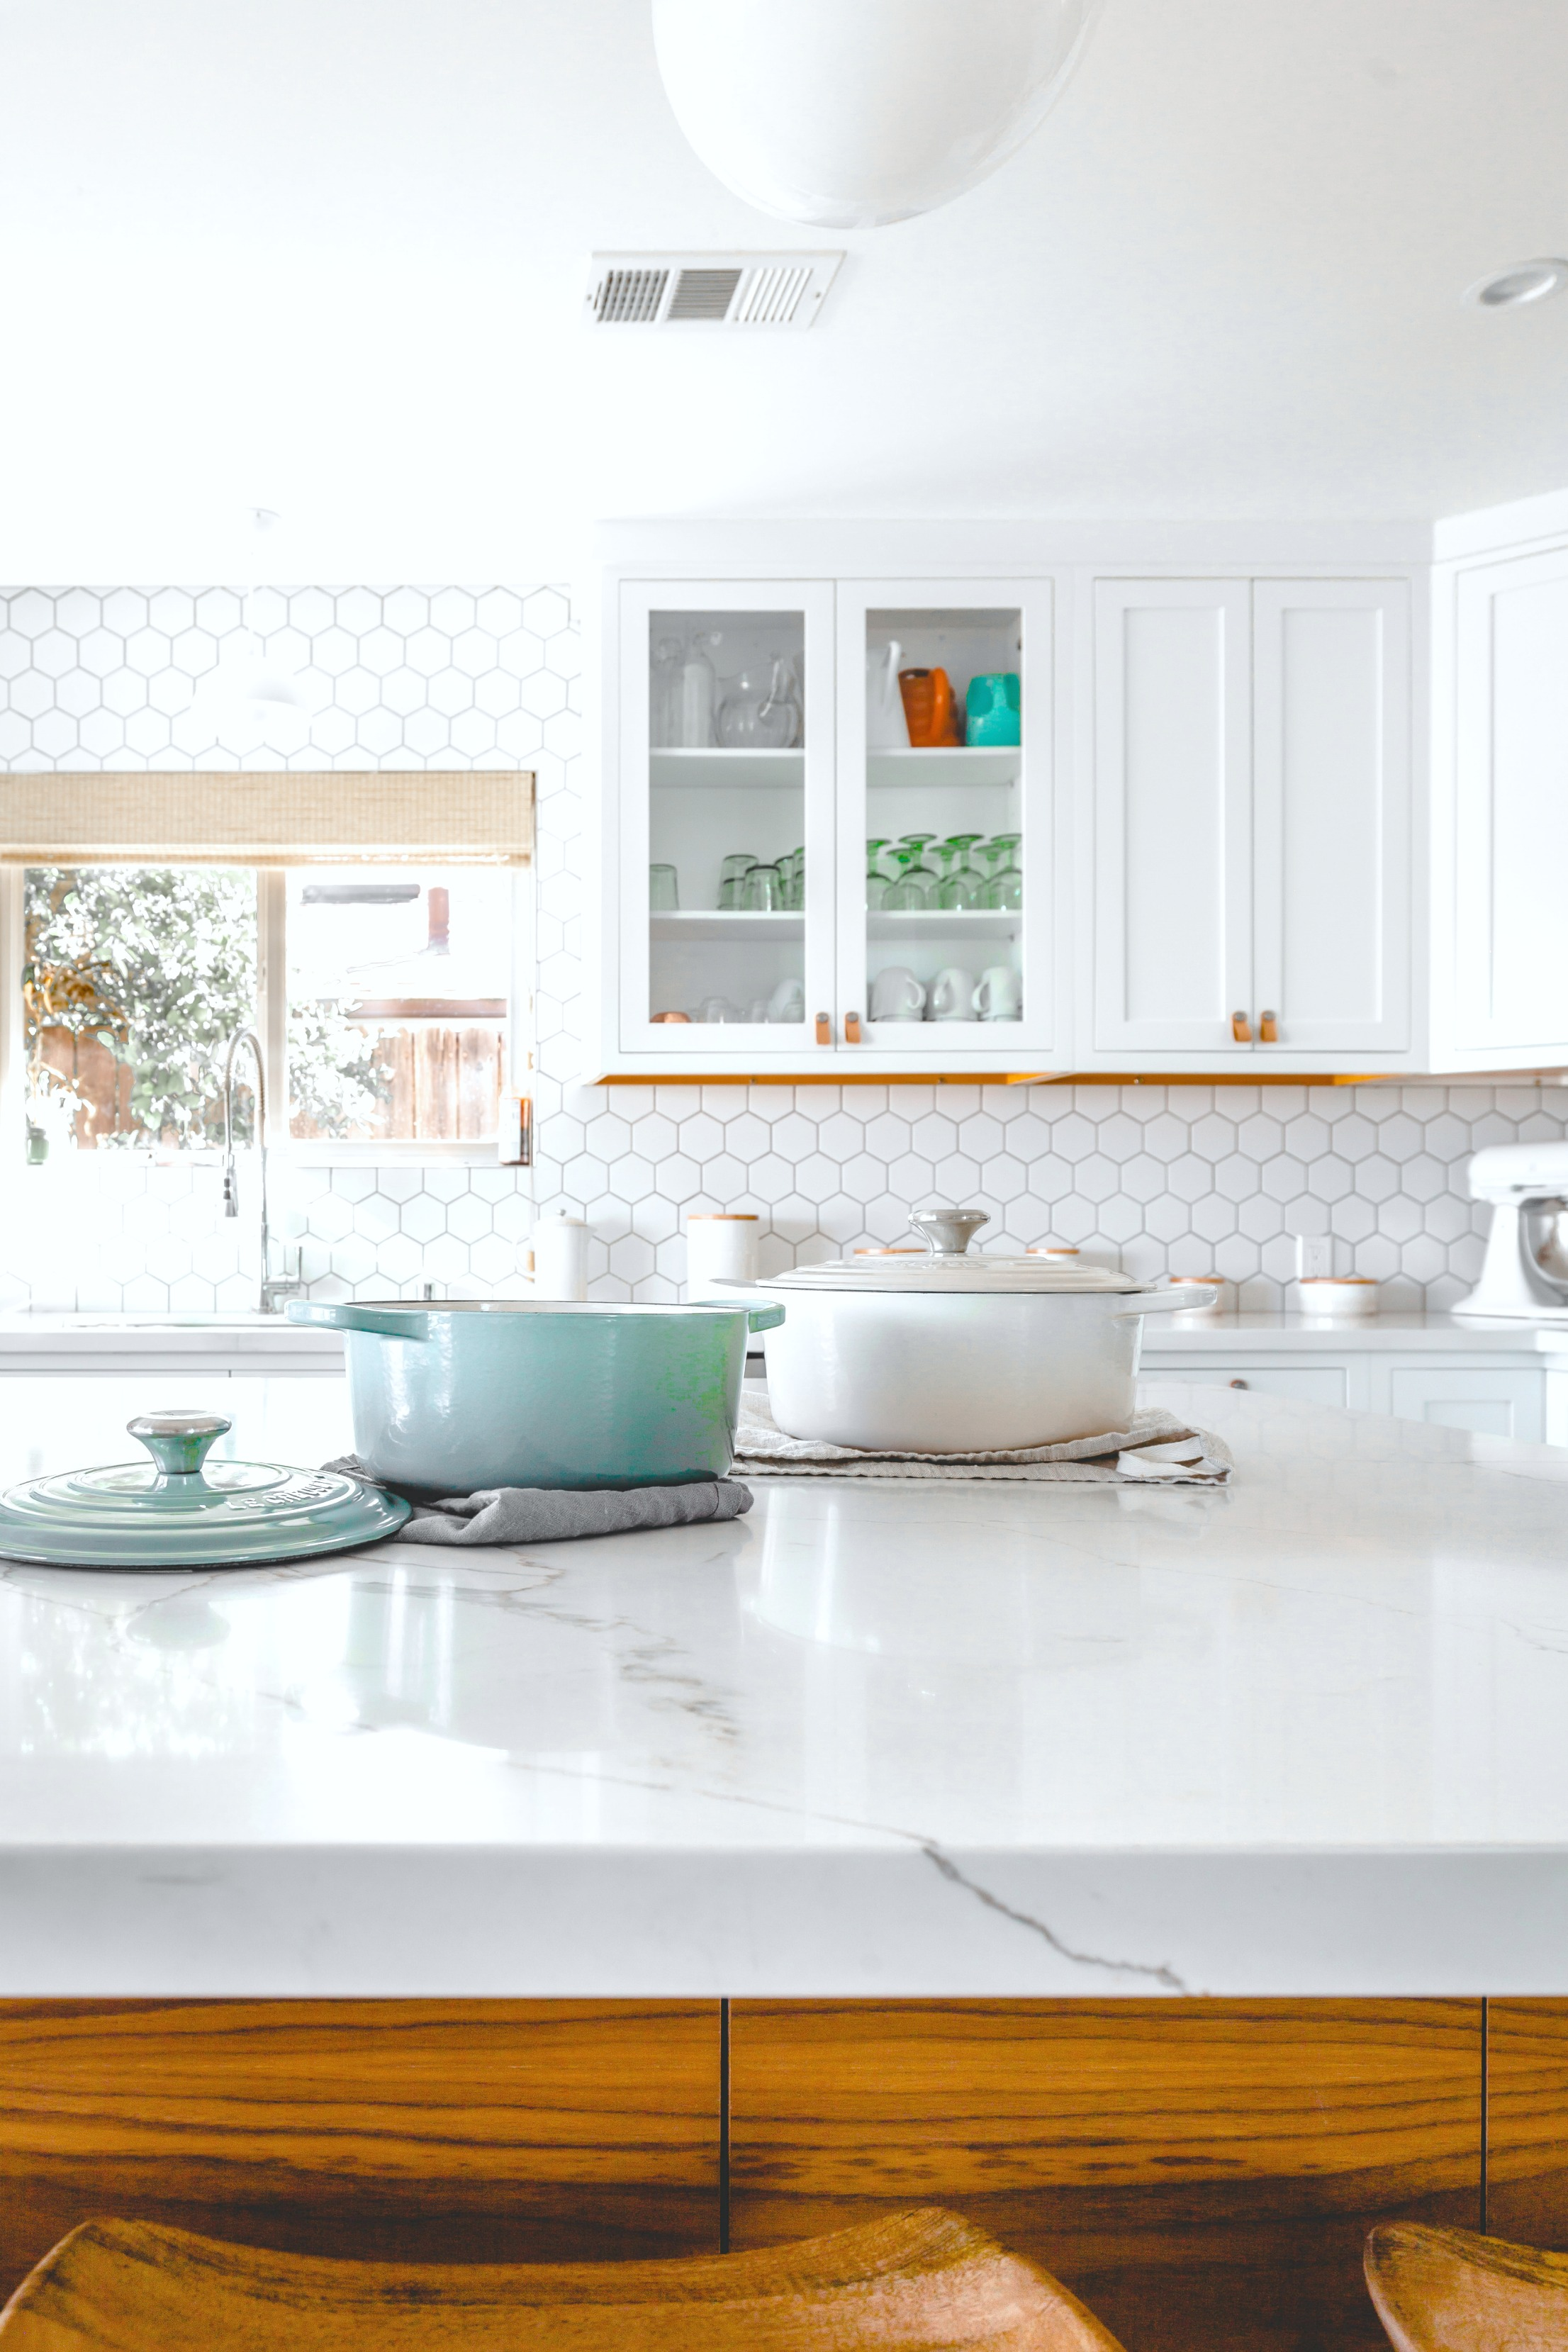 A close up of cooking pots to be used for cooking in a beautiful white kitchen with many appliances.